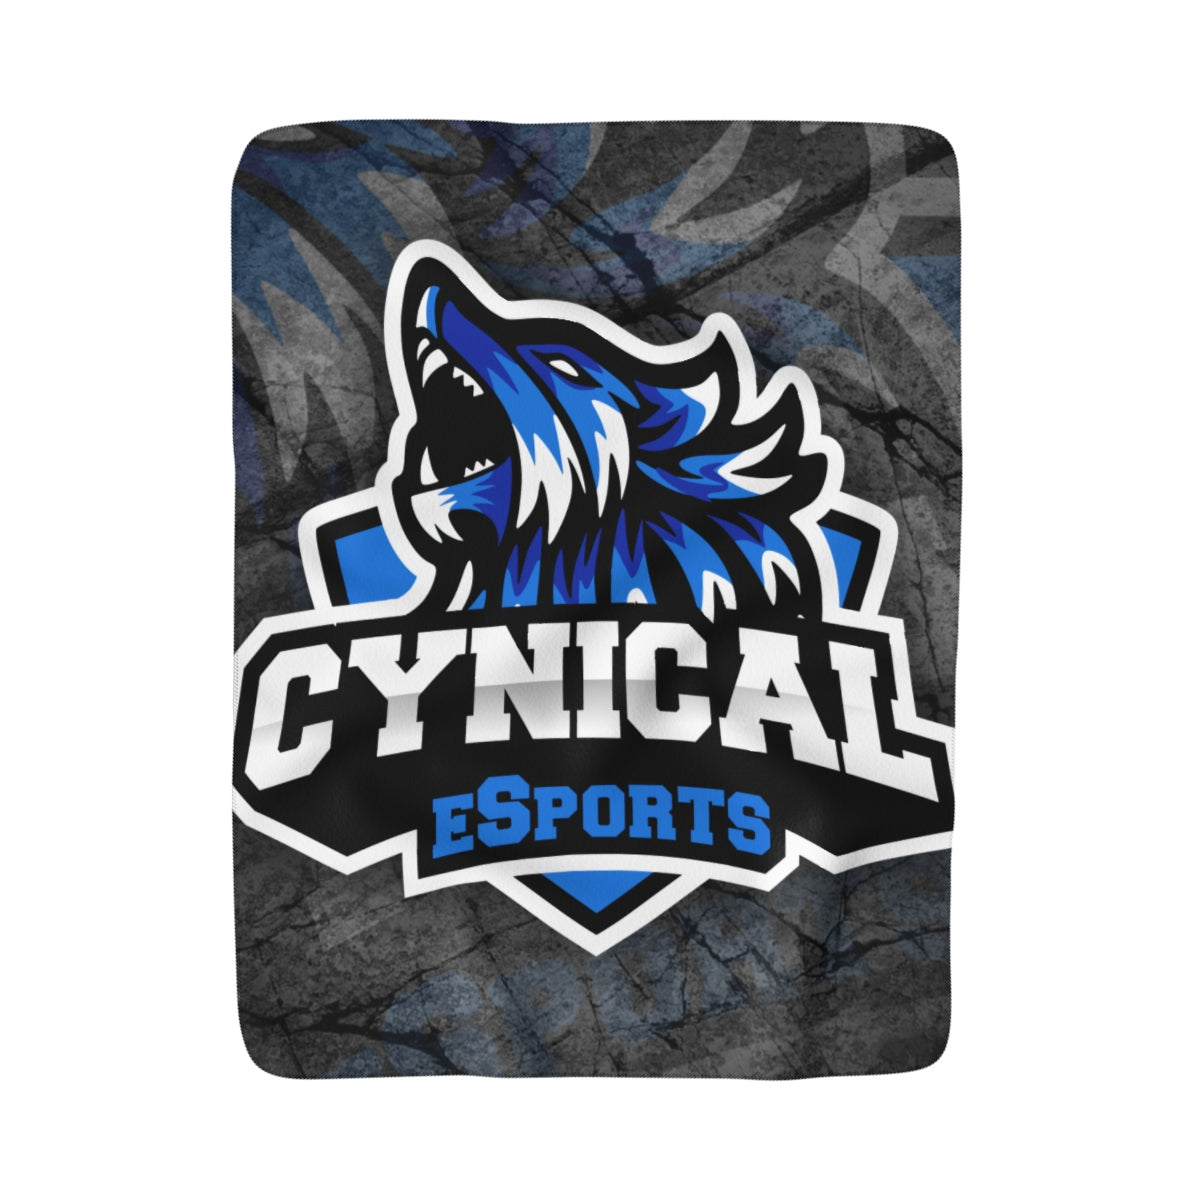 Cynical Esports Fleece Blanket